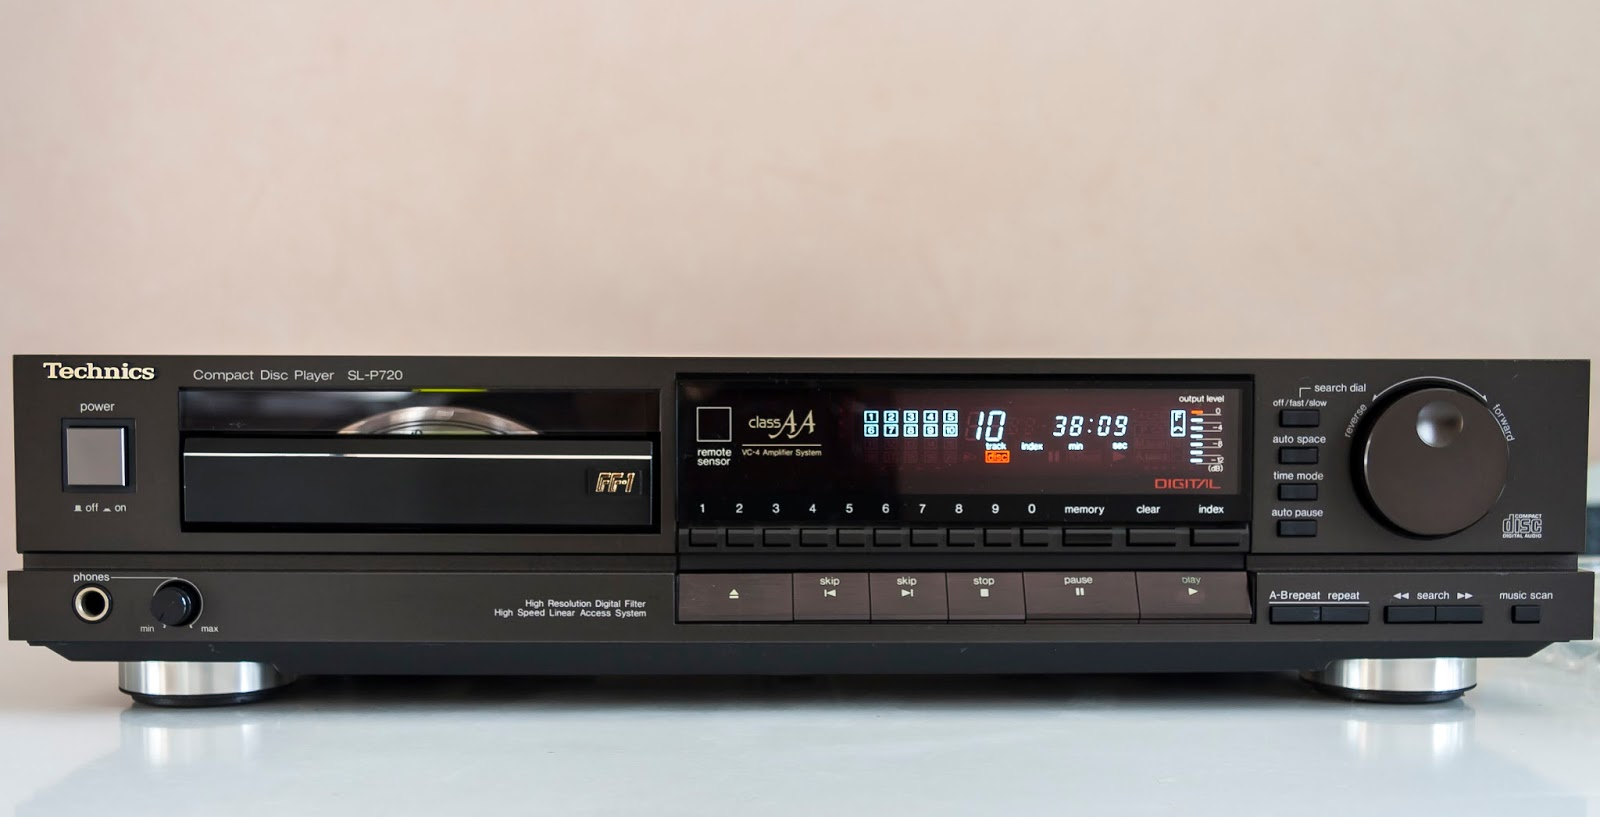 Sl Mc410 besides 1156762138 further Watch furthermore Sl Xp700 moreover Sl P1200. on technics sl cd player